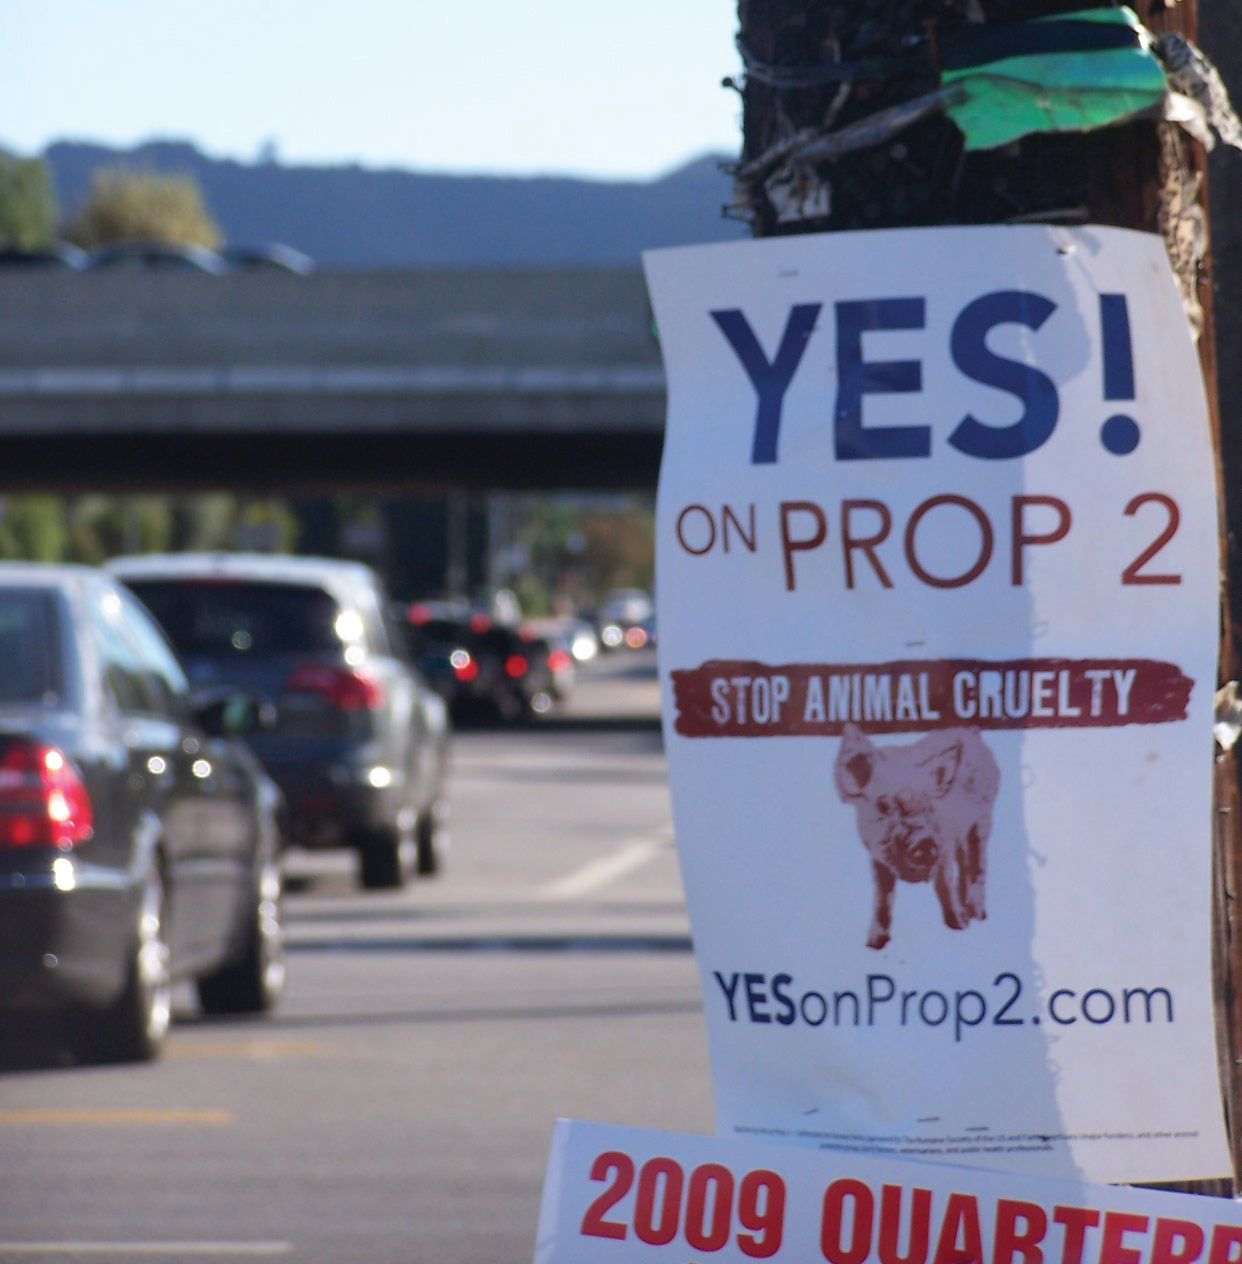 Yes on Prop 2 sign in California.